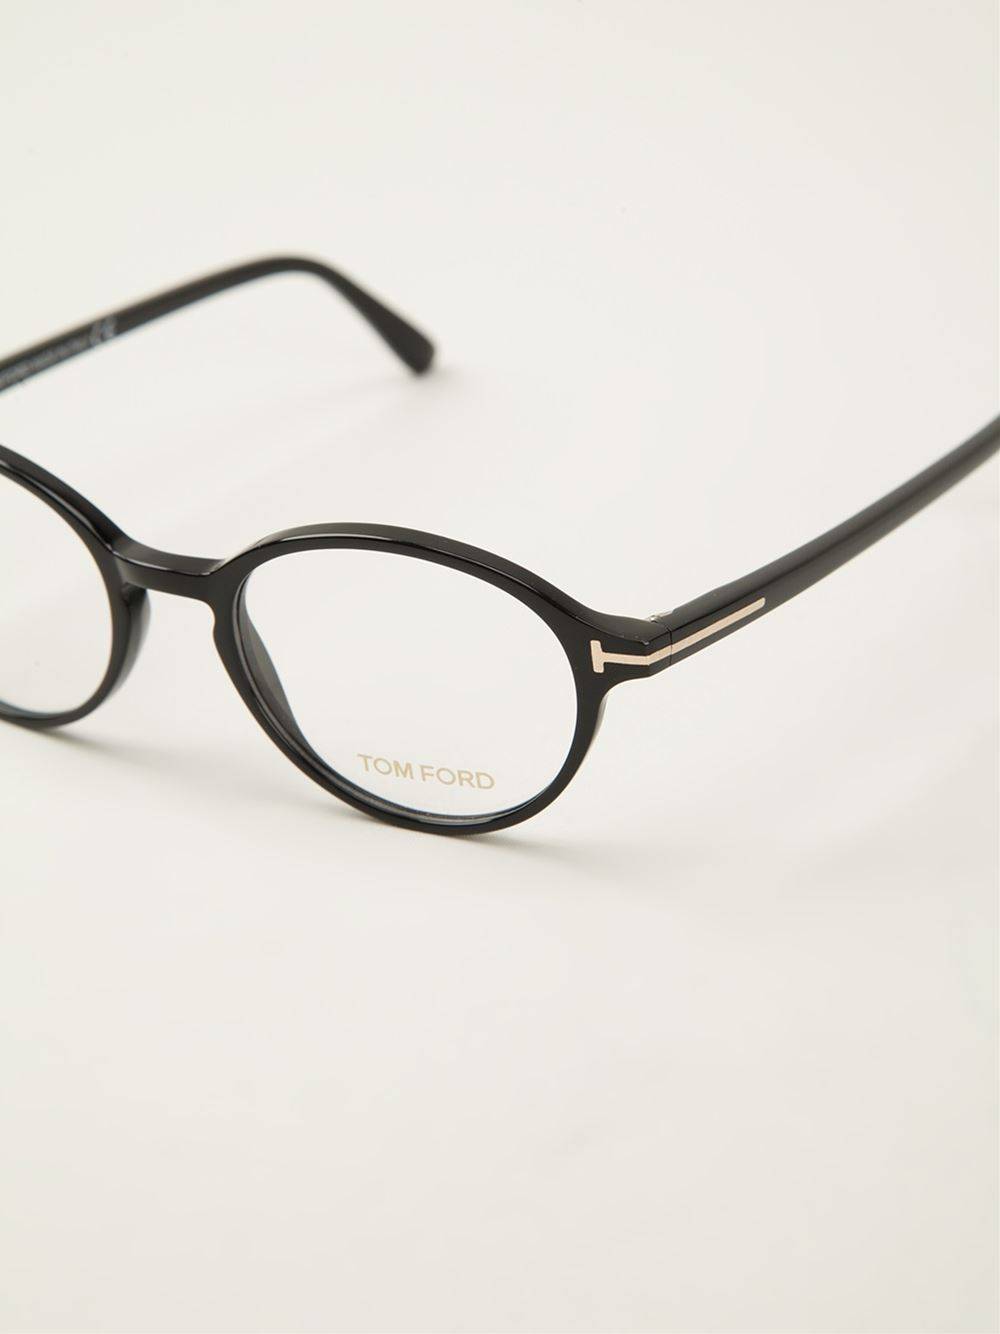 6a6192964a3 Lyst - Tom ford Round Frame Glasses in Black